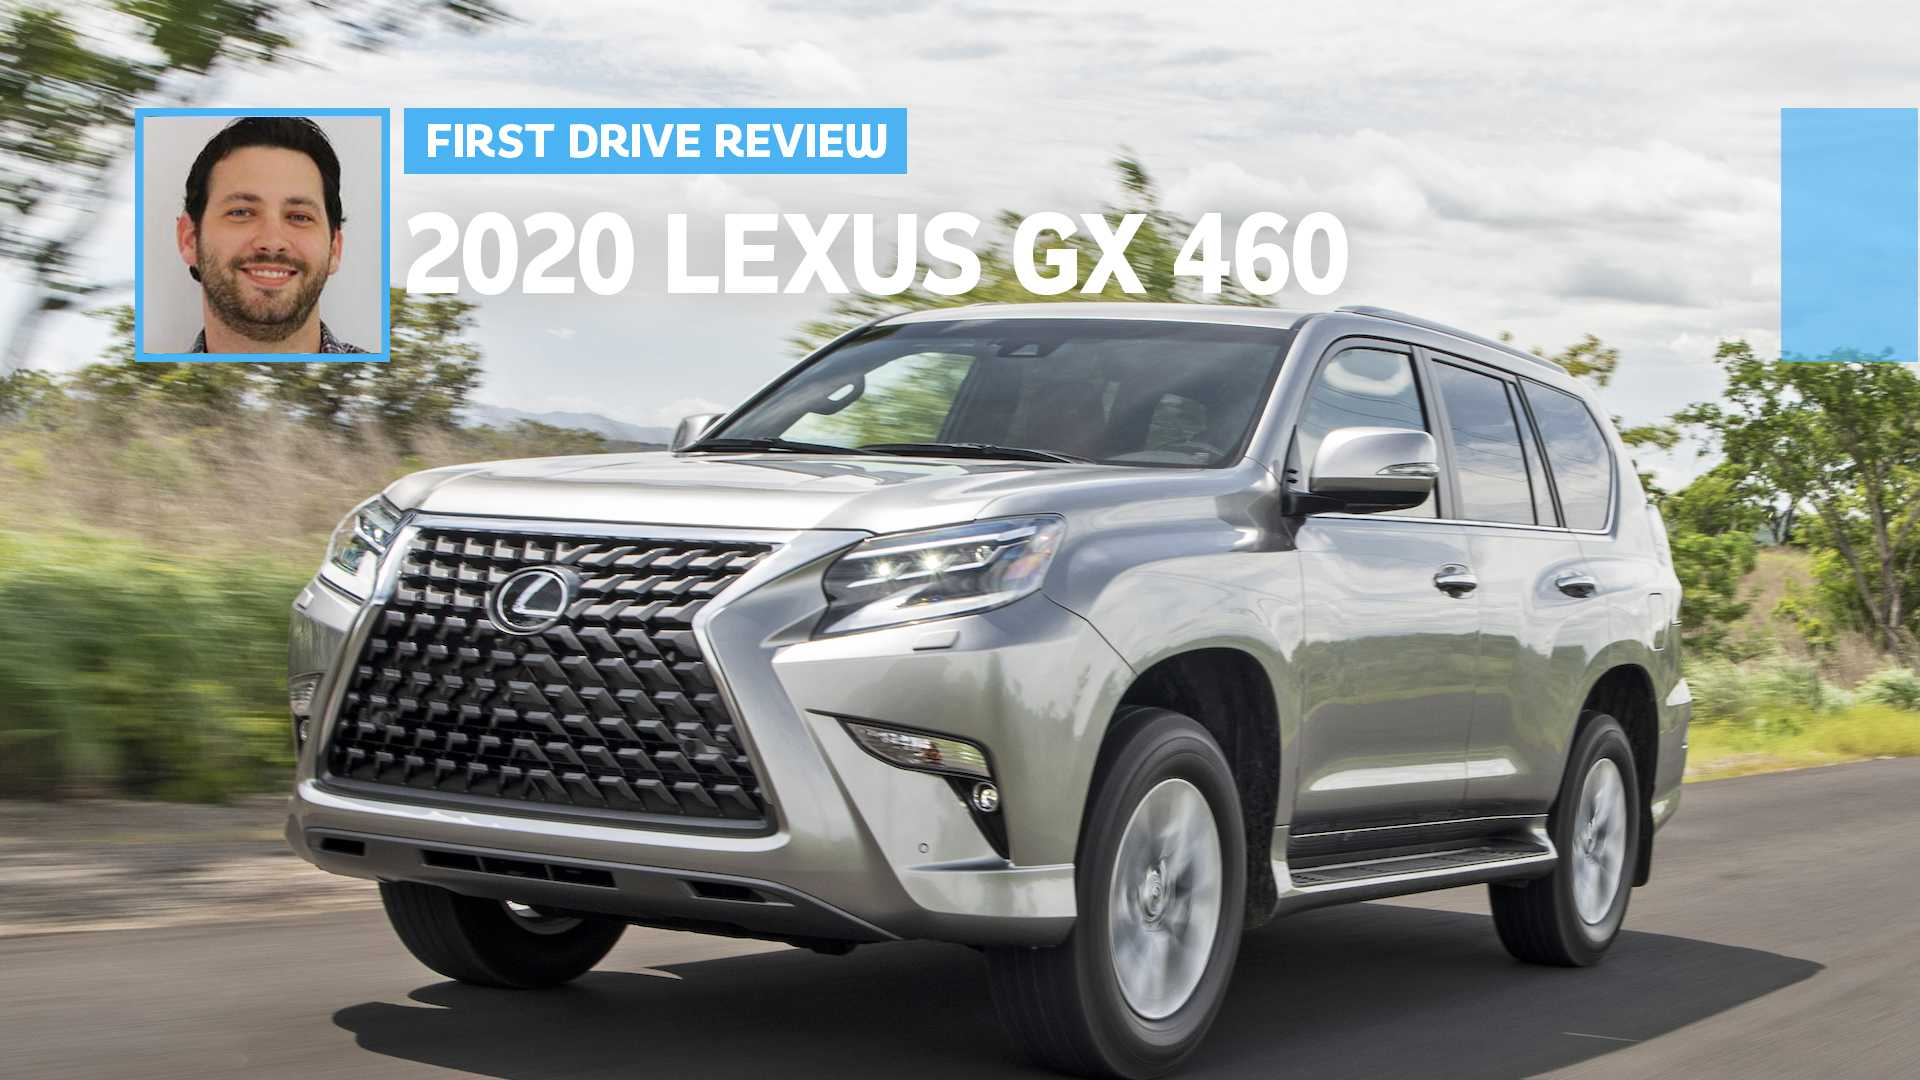 37 New 2020 Lexus Gx 460 Spy Photos Redesign and Review